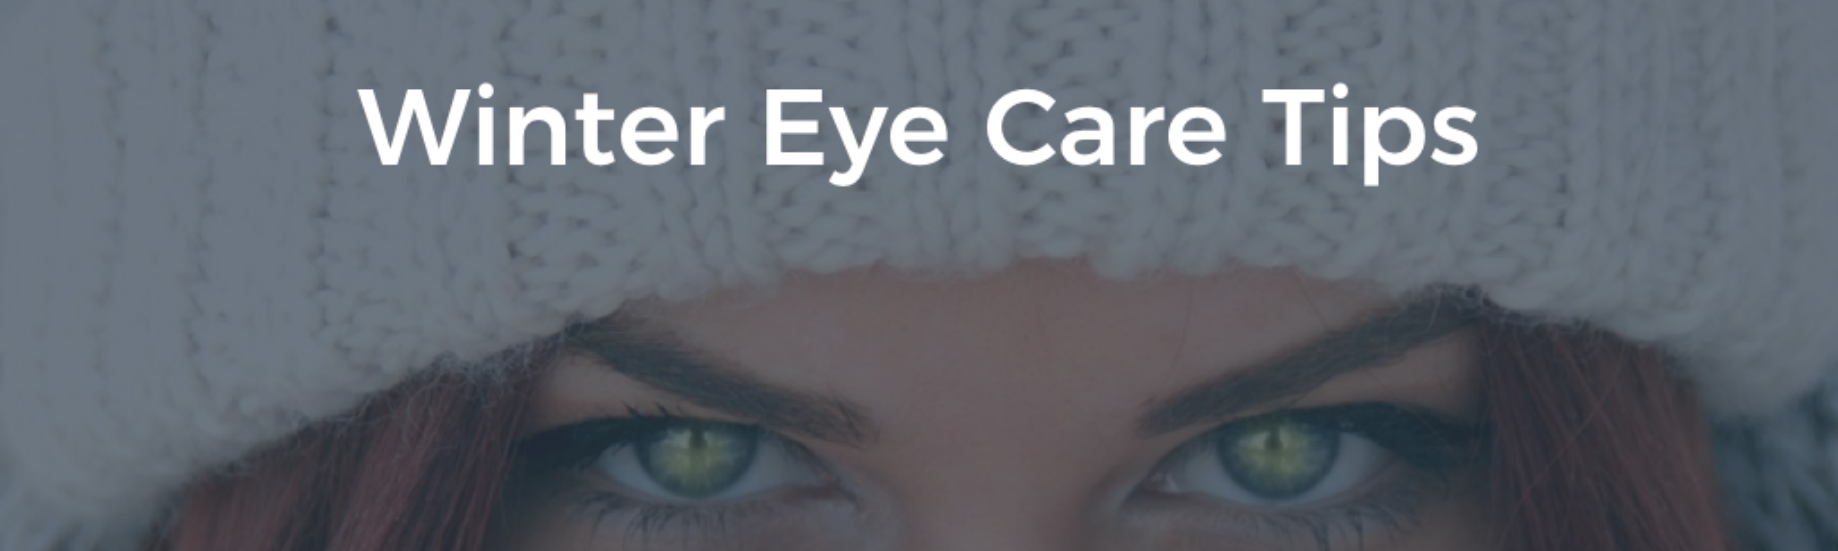 15 Winter Eye Care Tips - No 10 is so Effective but